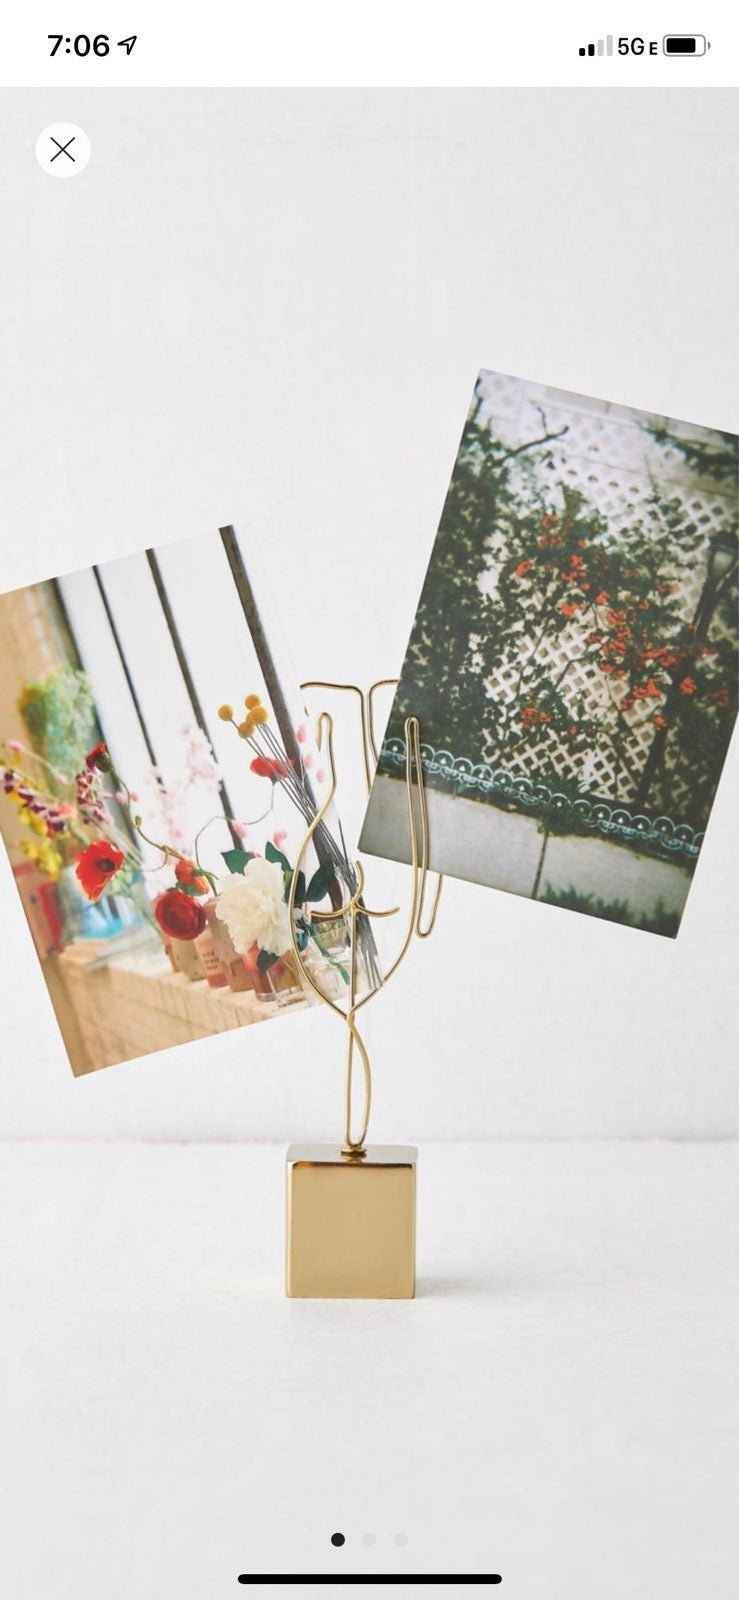 Urban outfitters polaroid picture holder